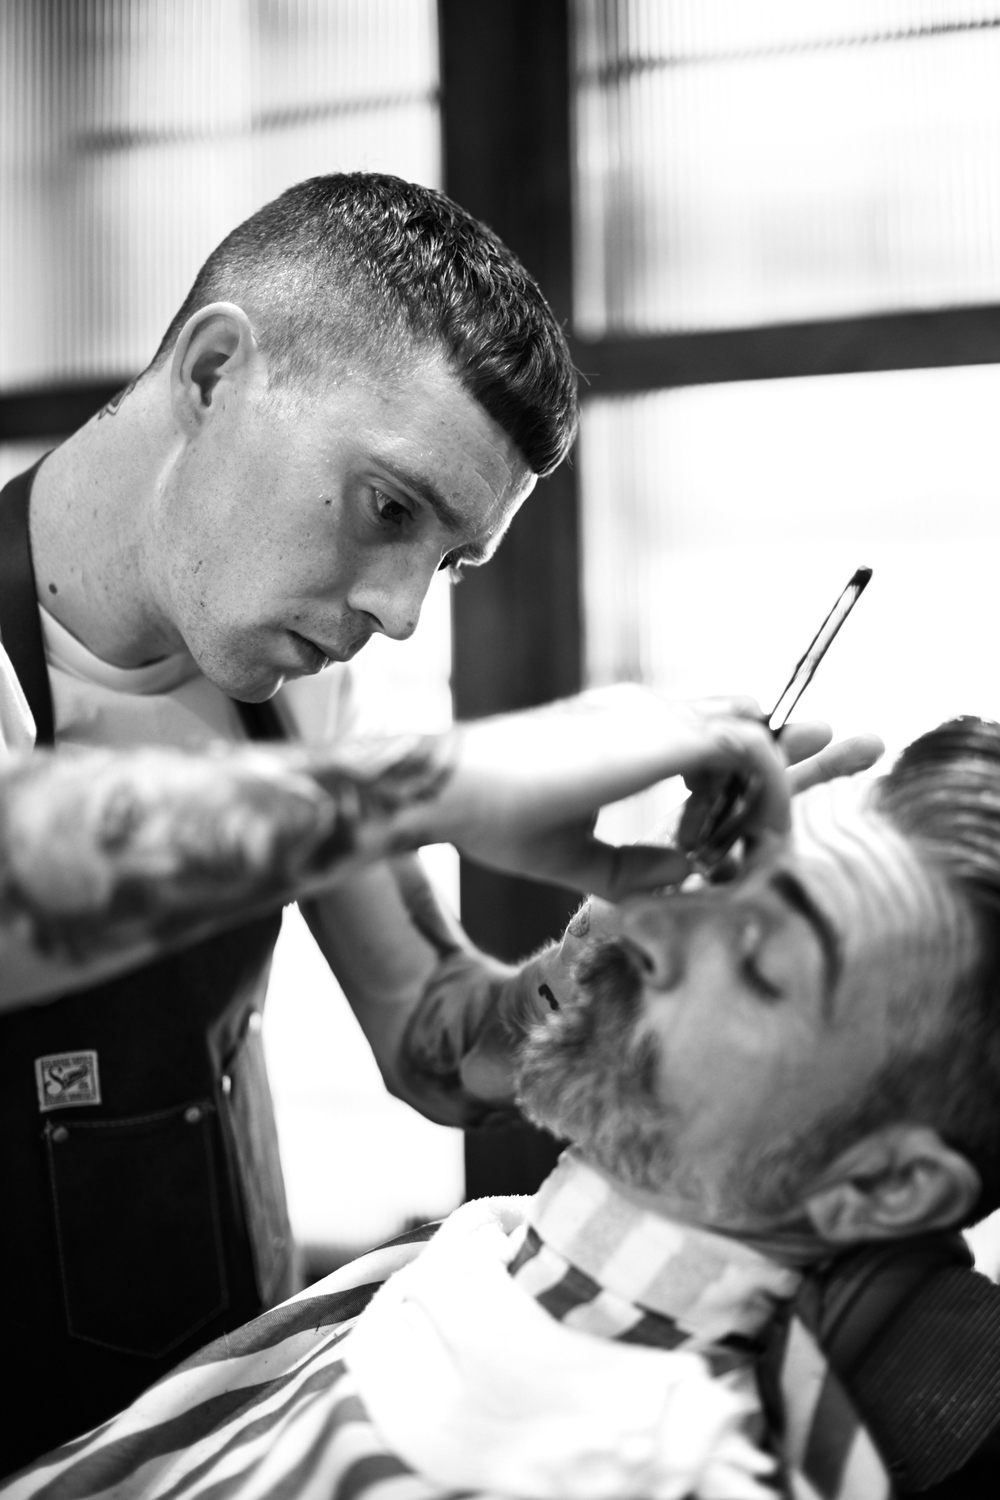 Sam's Barbers for Pomp & Co